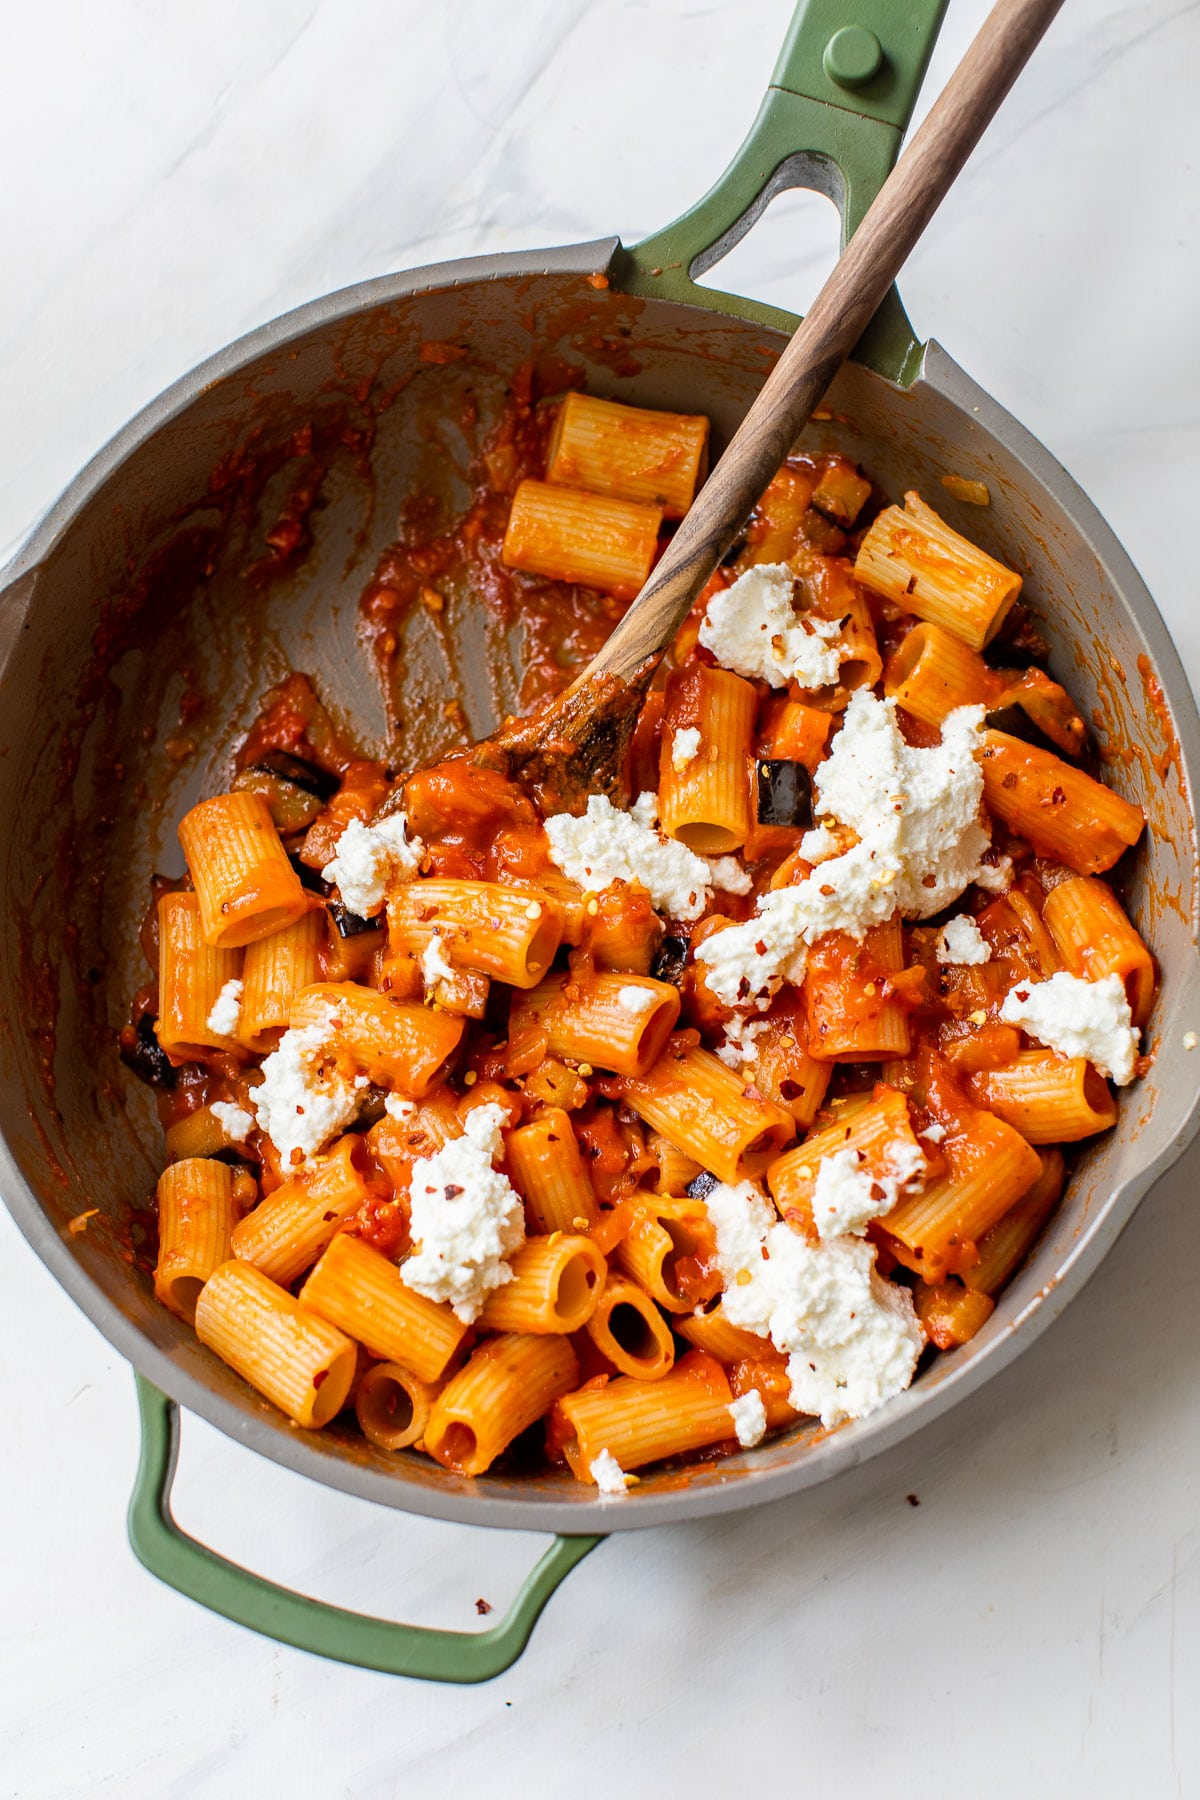 skillet filled with rigatoni pasta and dollops of ricotta cheese